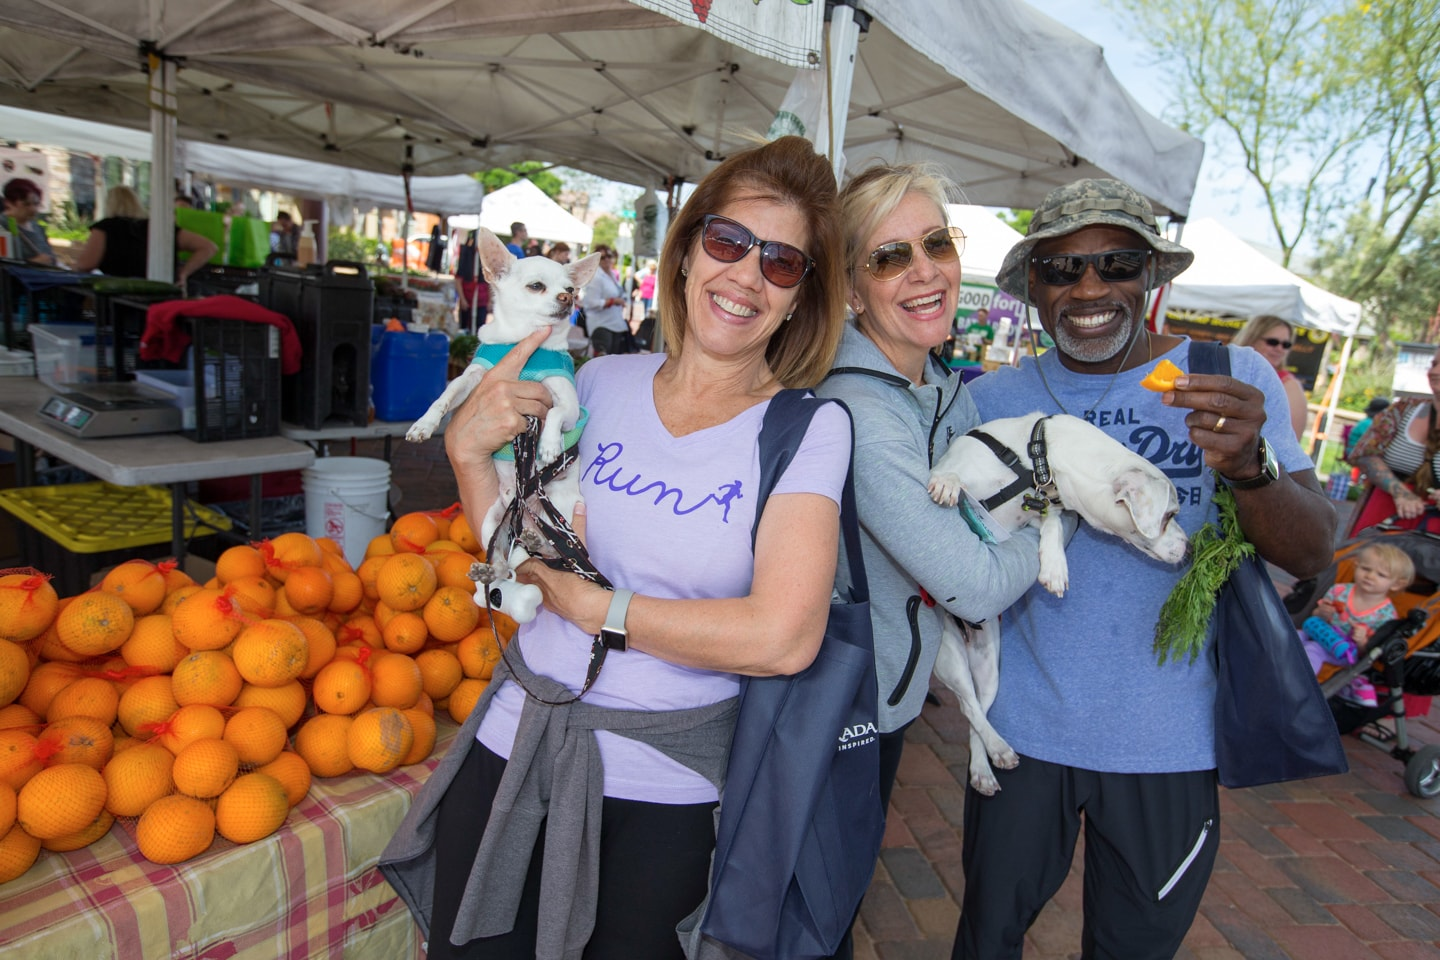 Friends at the Farmers' Market